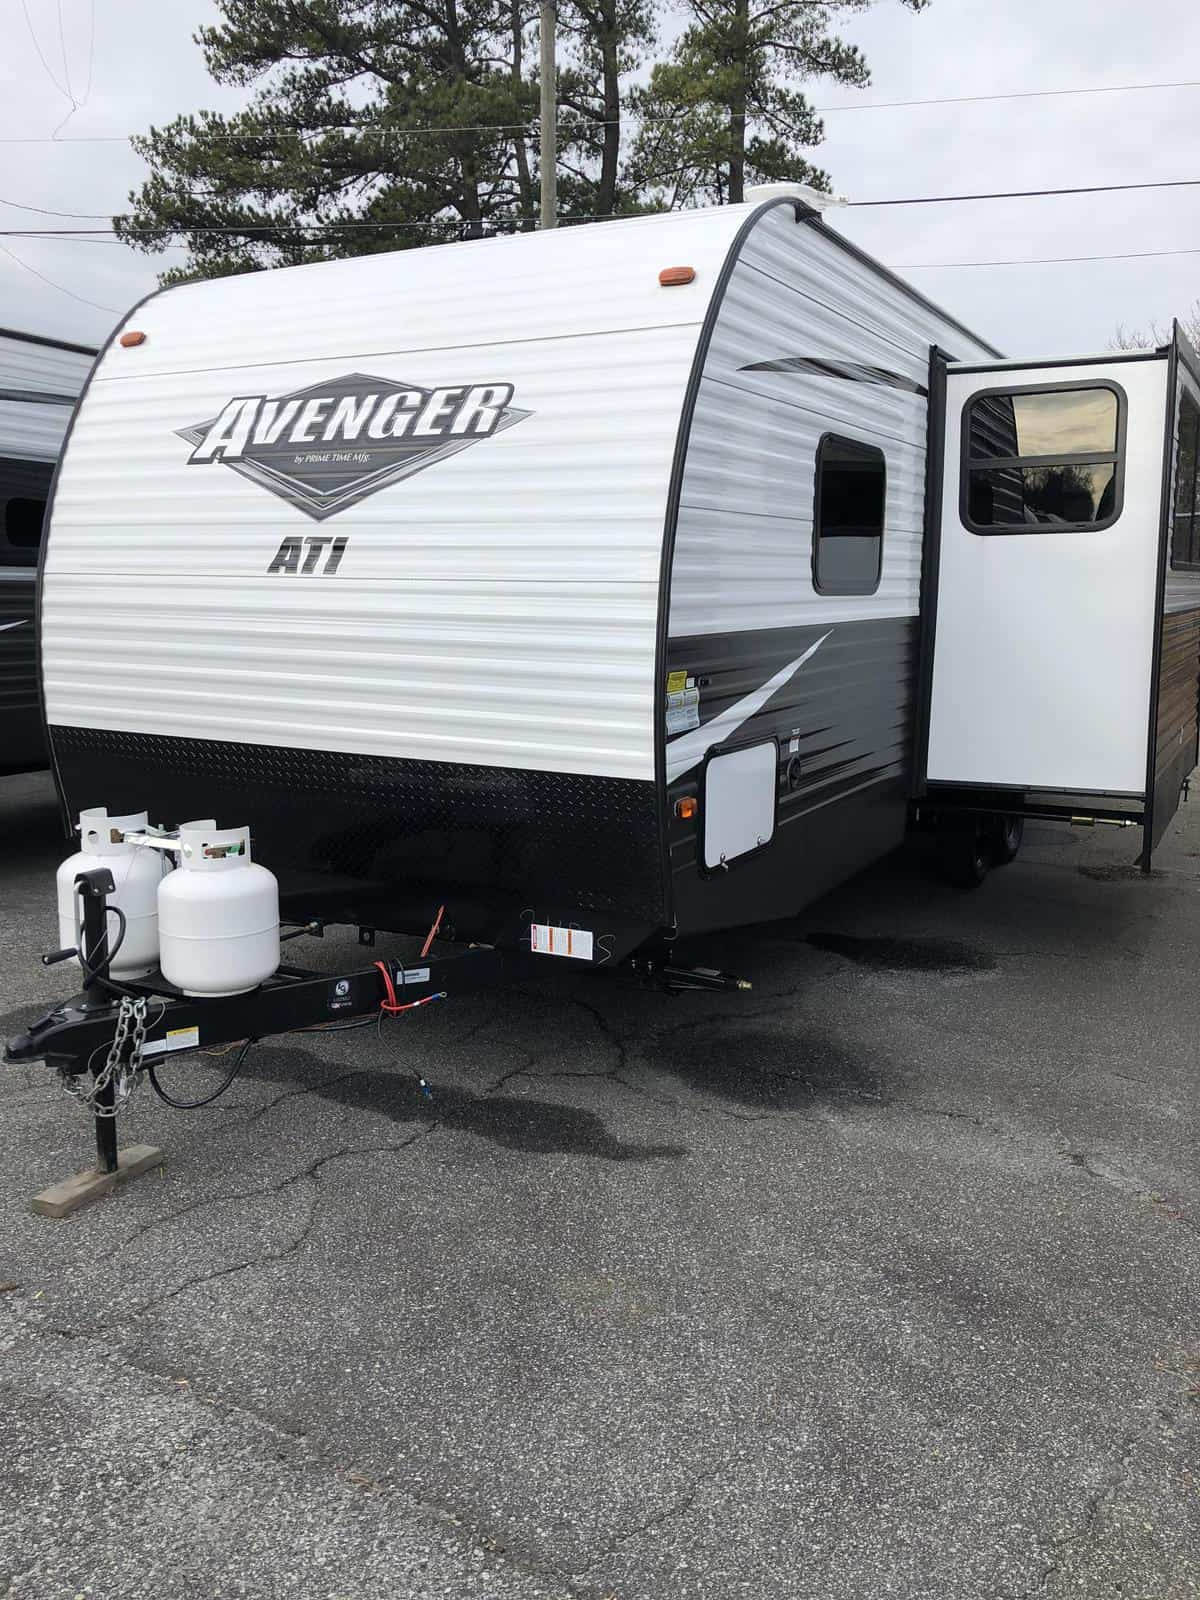 NEW 2019 Prime time Avenger 24BHS ATI - Three Way Campers